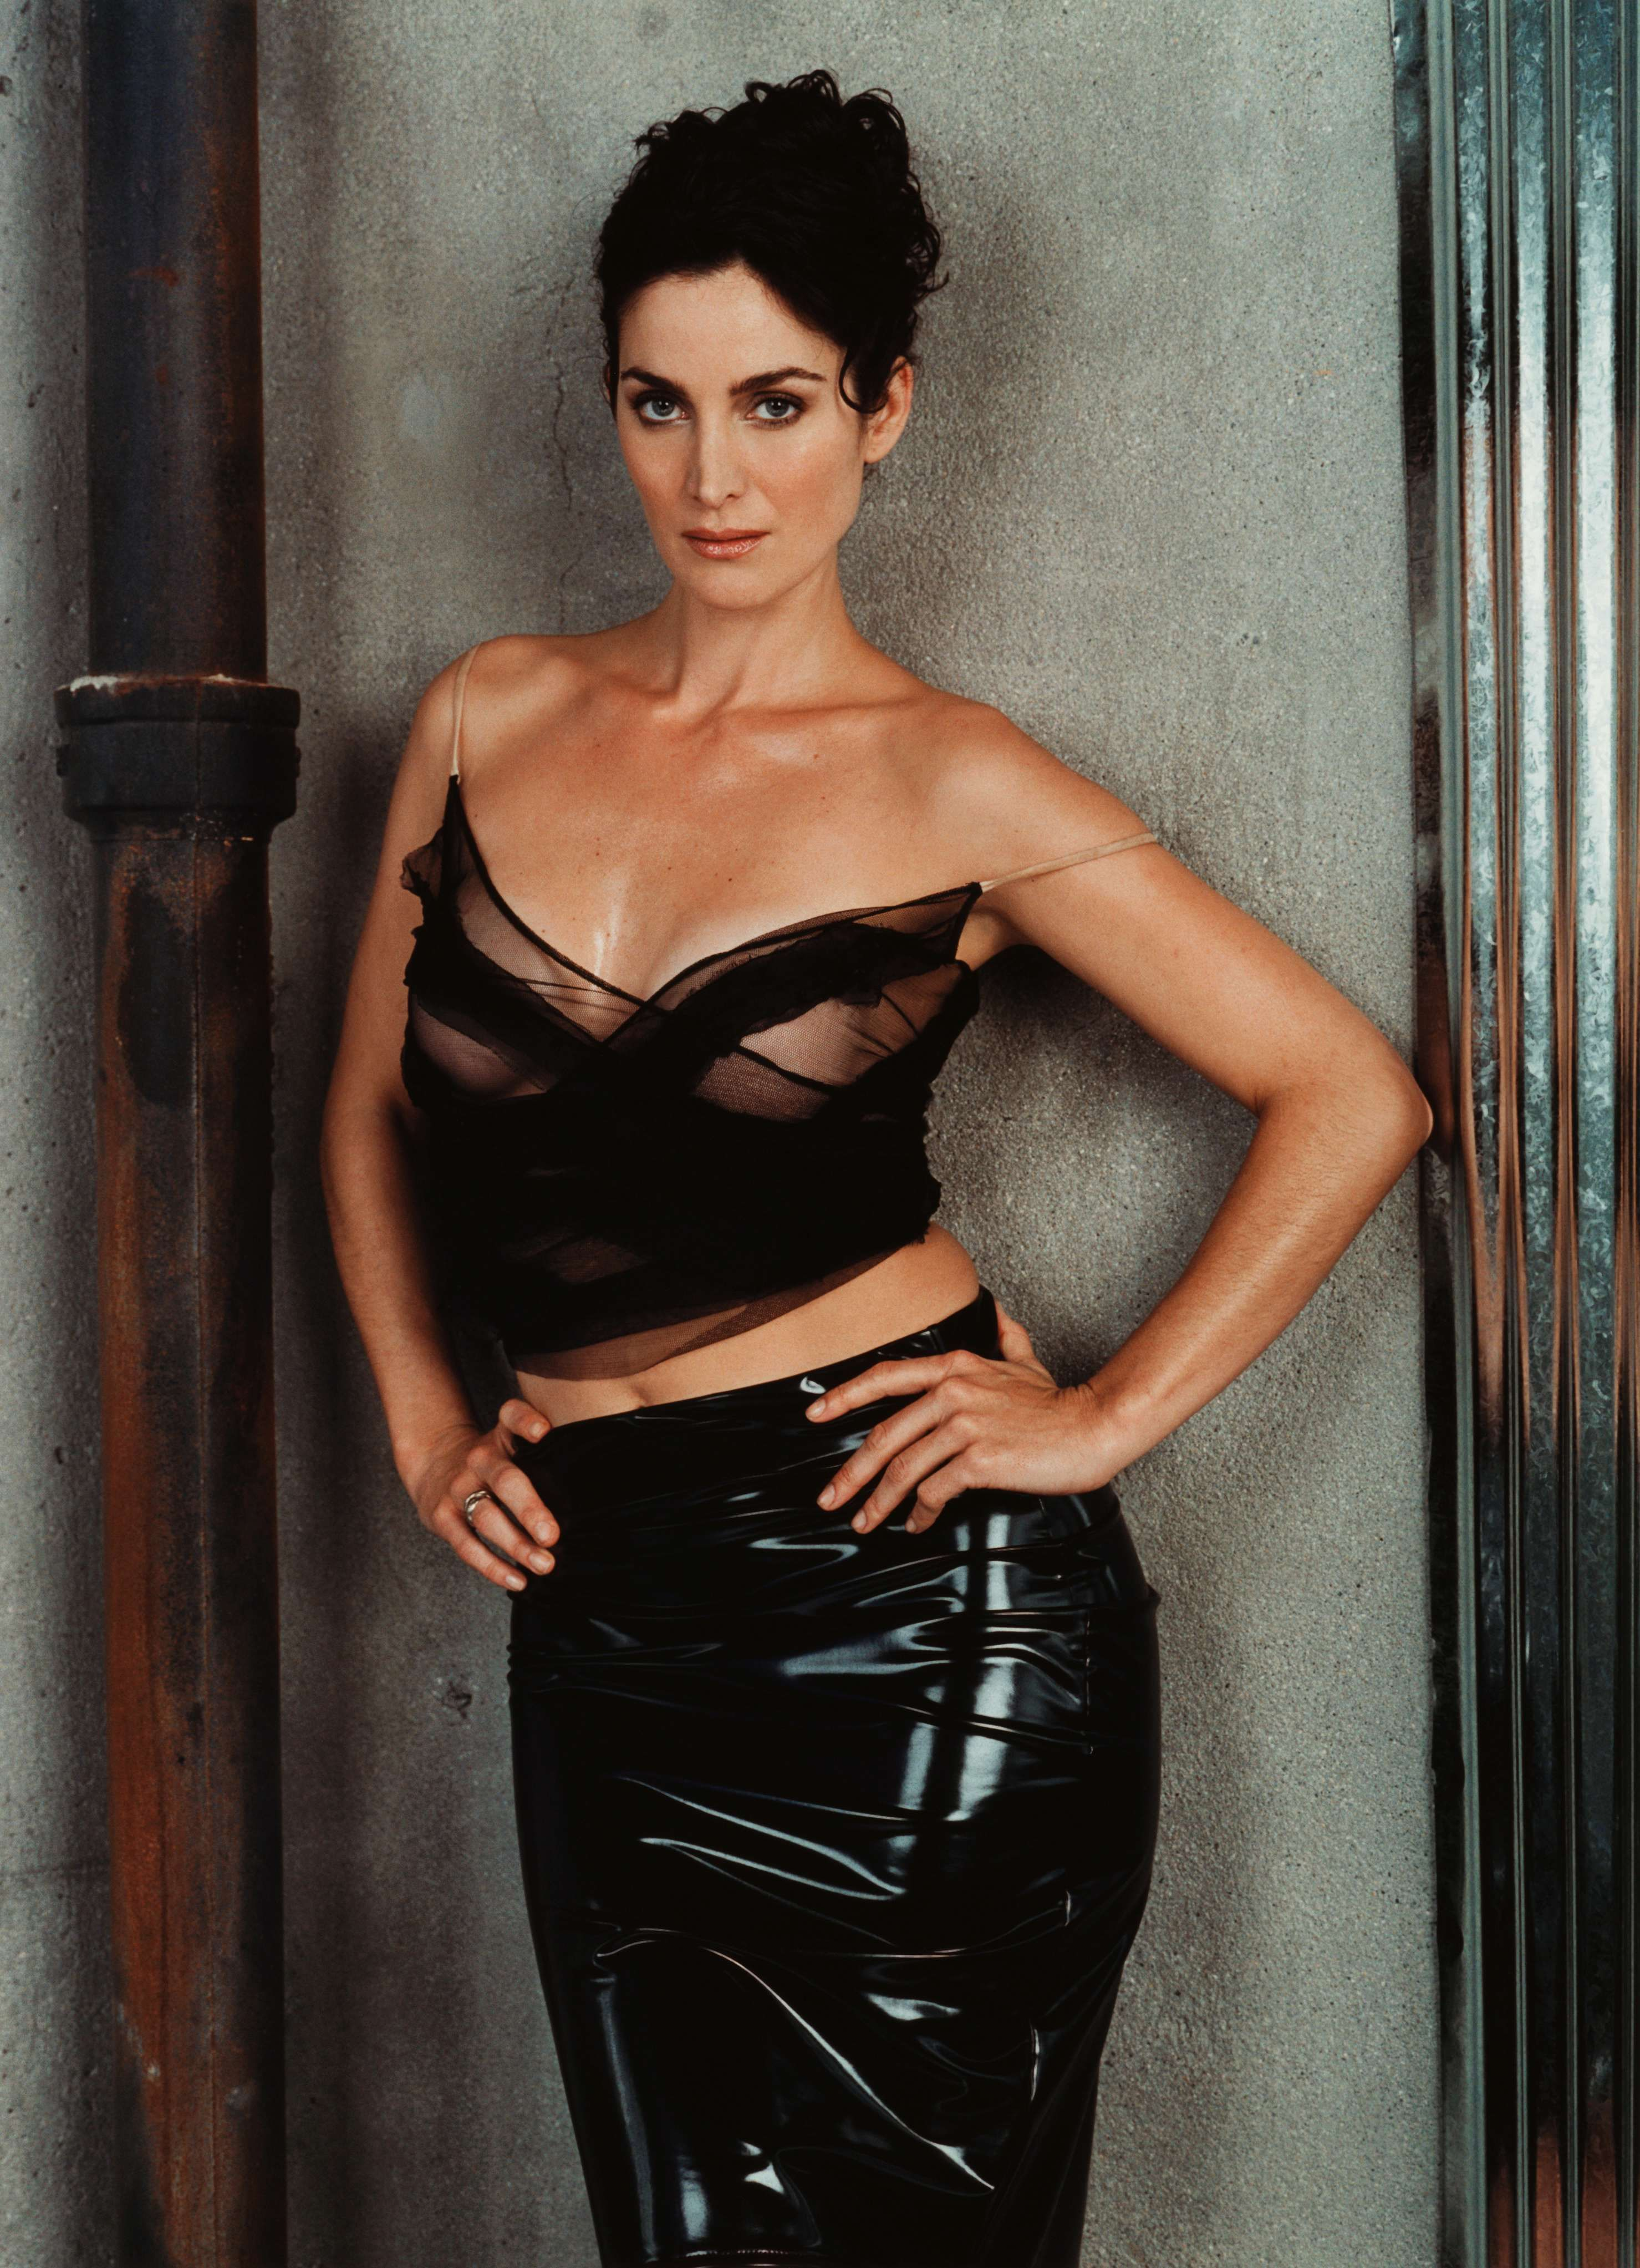 Carrie anne moss hot naked sex